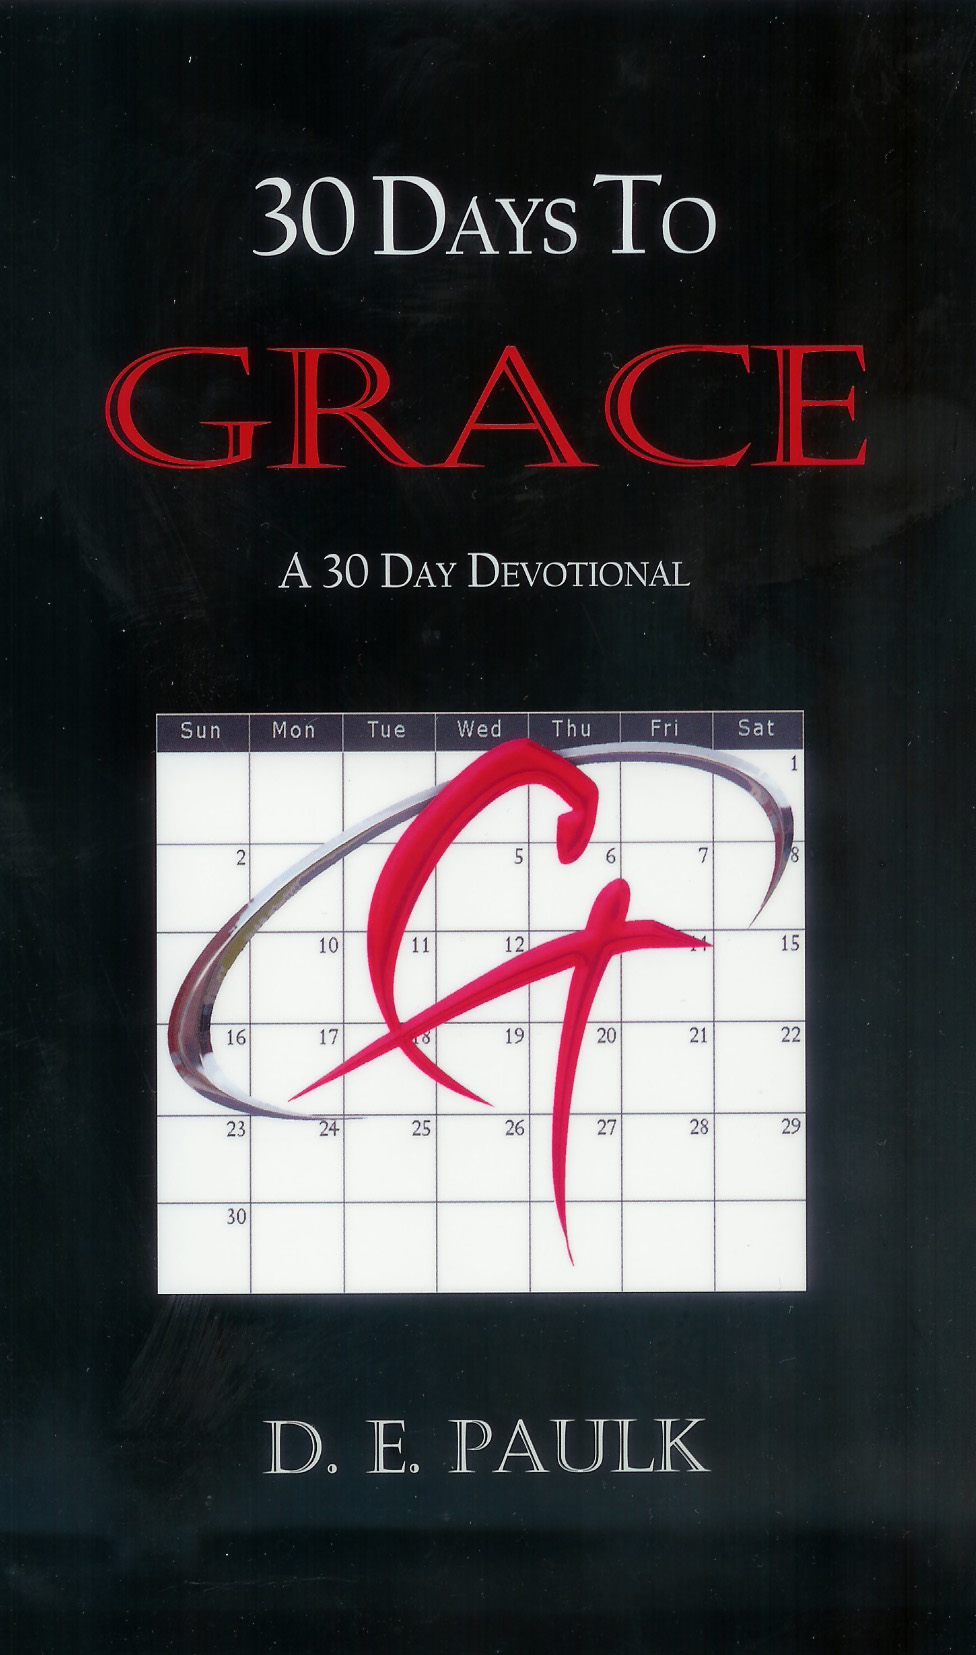 30 Days to Grace